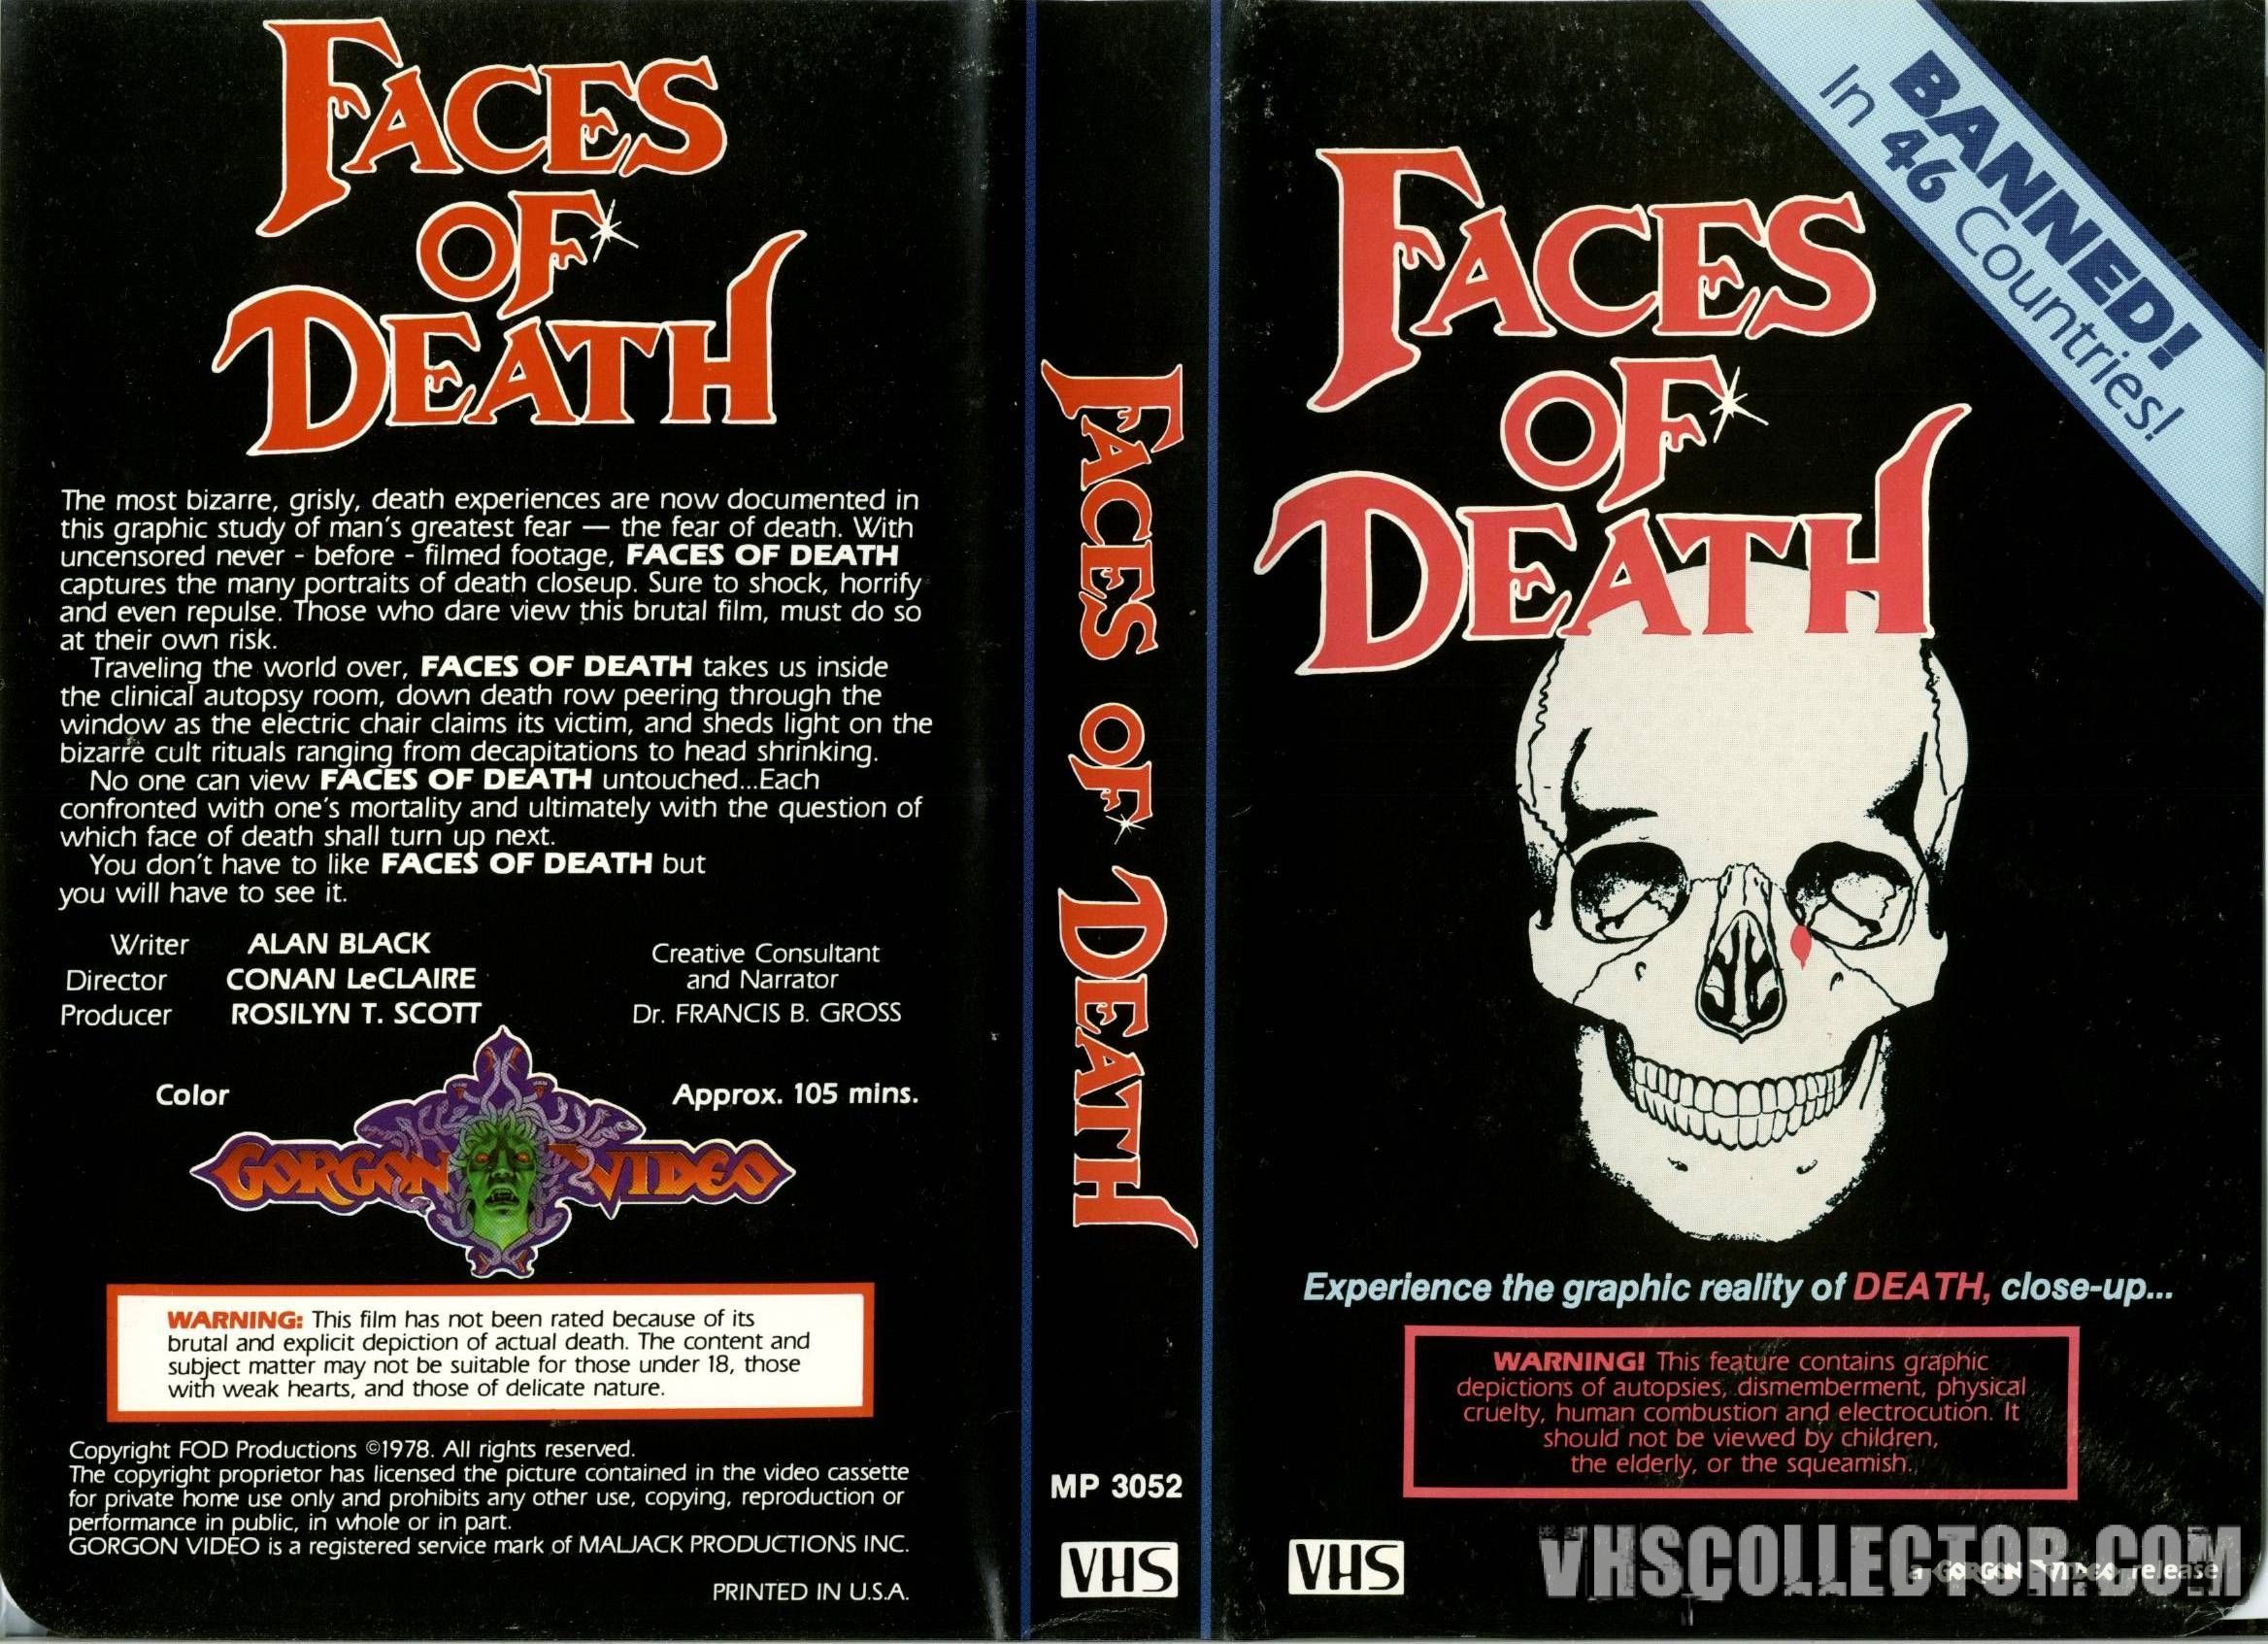 Pictures of death faces